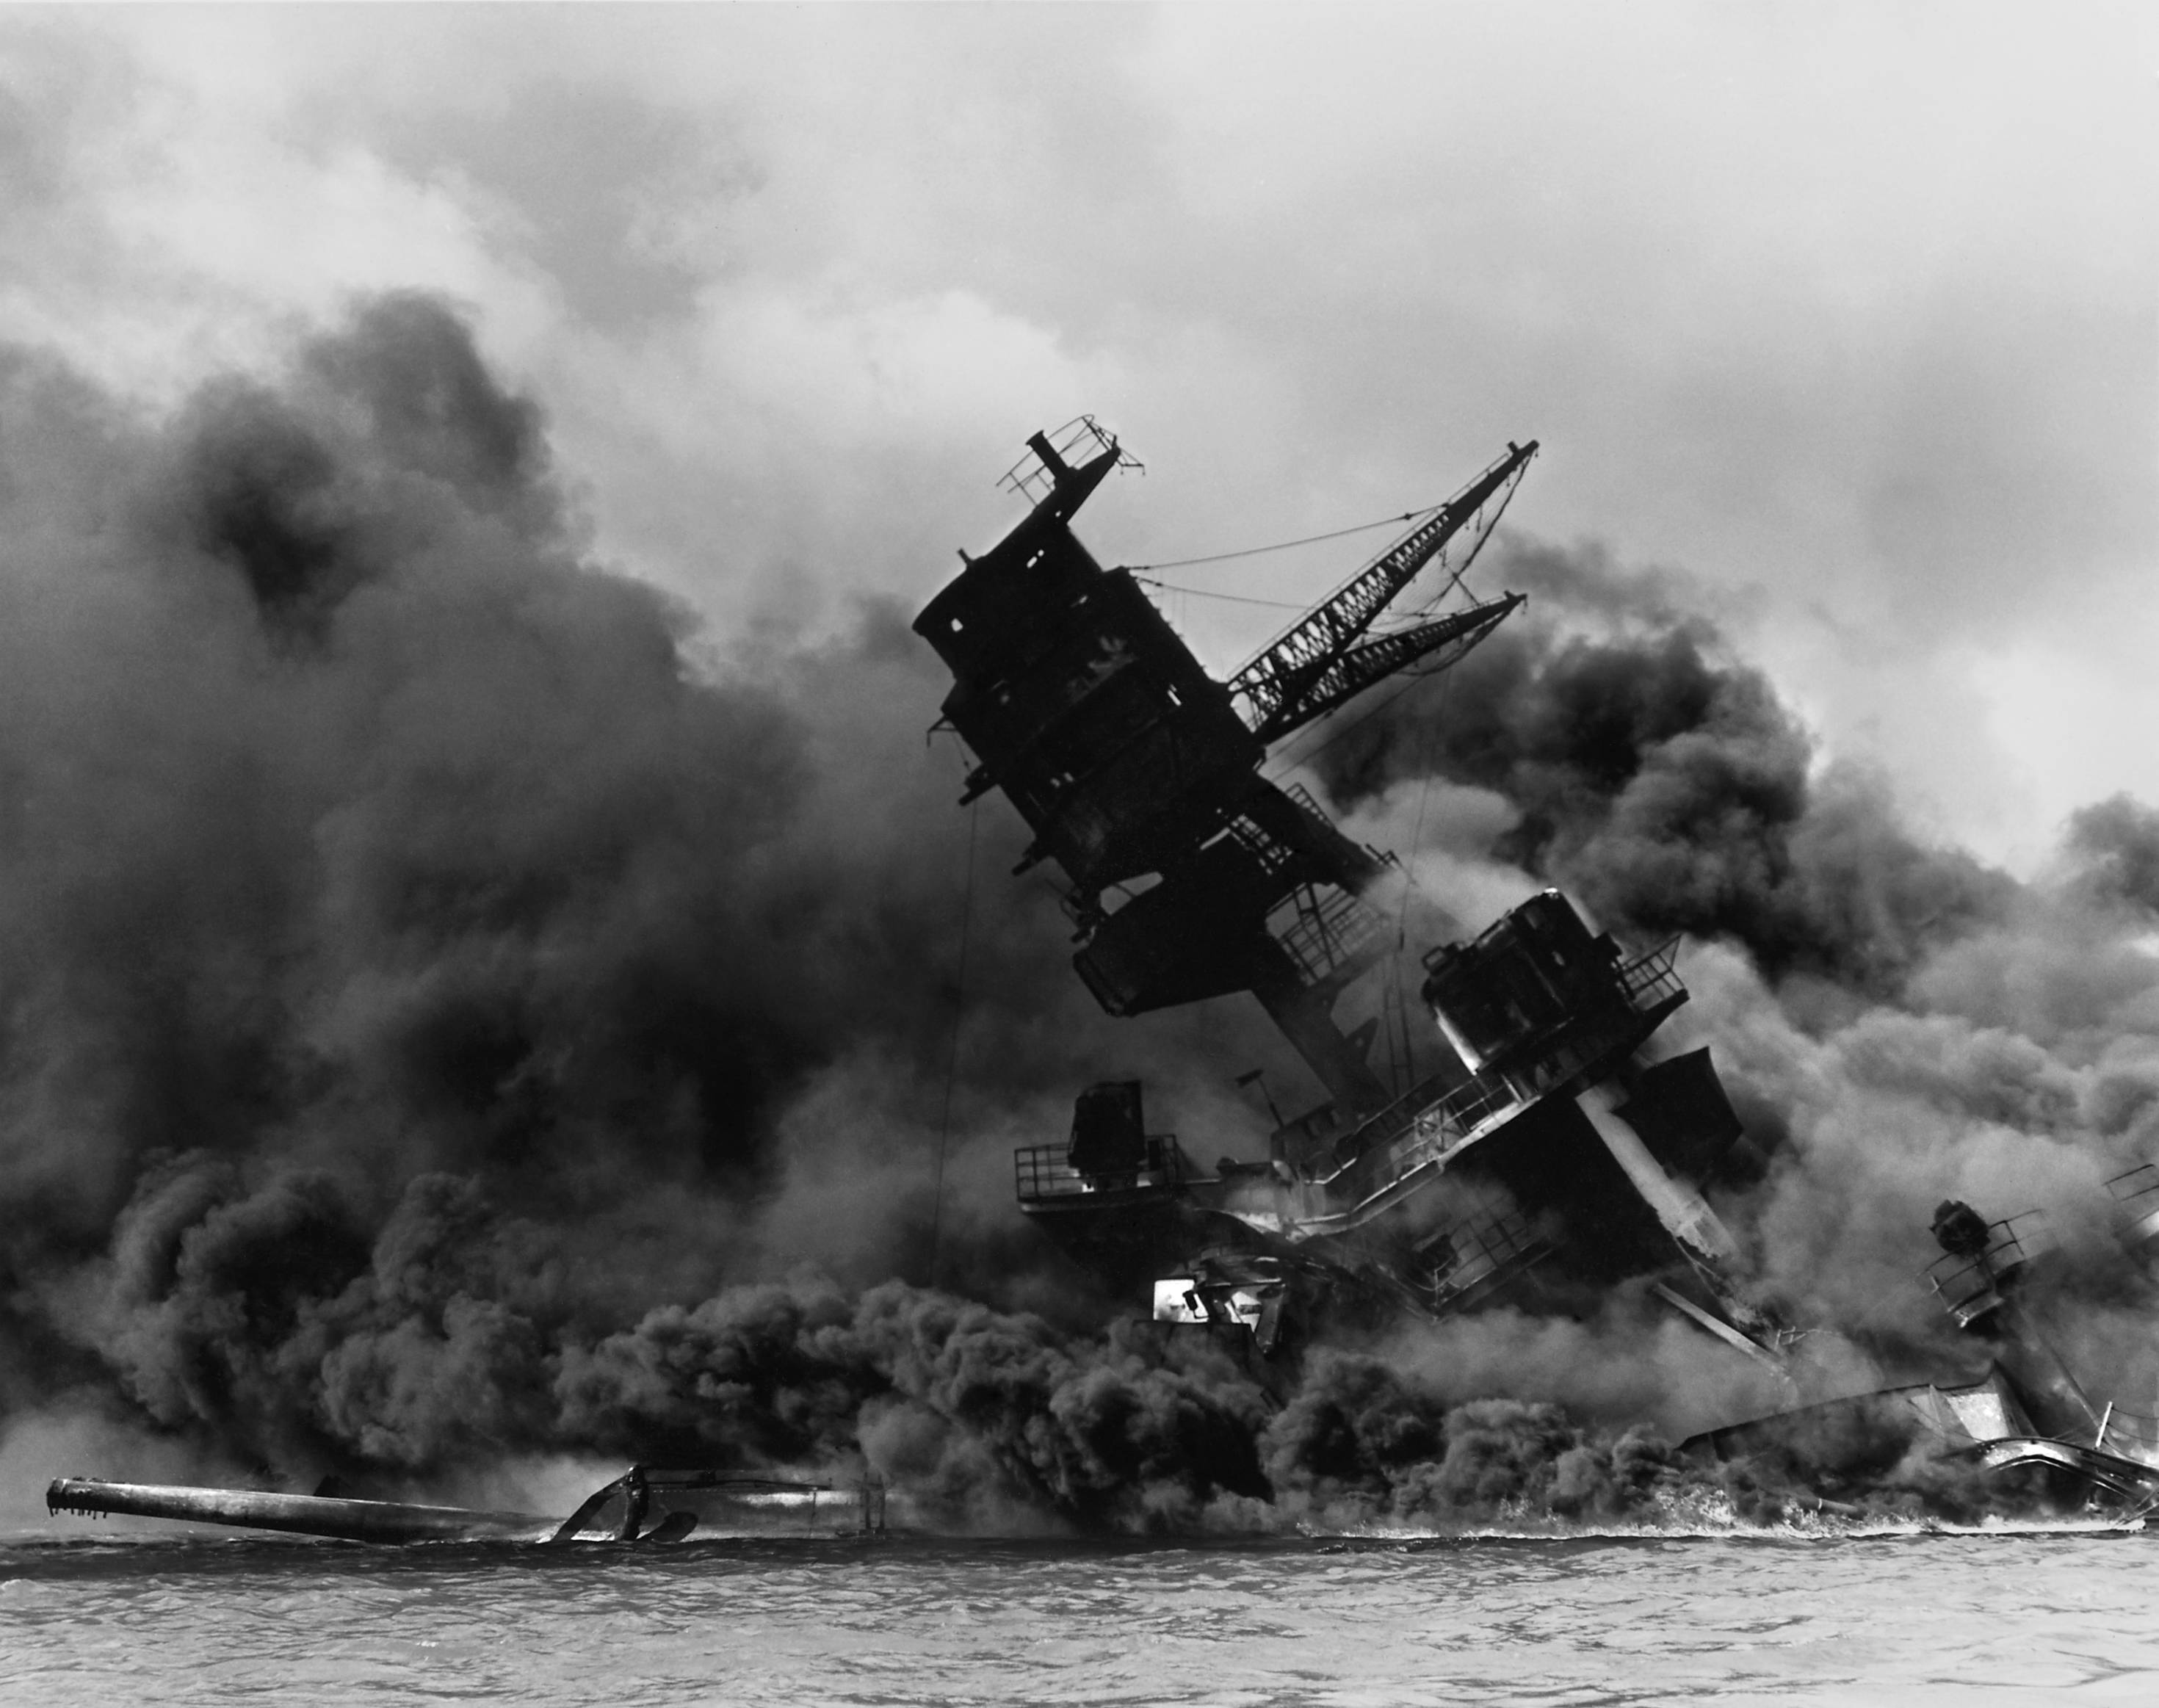 6a9ddc22c3d01c53ed63_Pearl_Harbor_-_USS_Arizona_burning_after_Japanese_attack_-_wikipedia.jpg